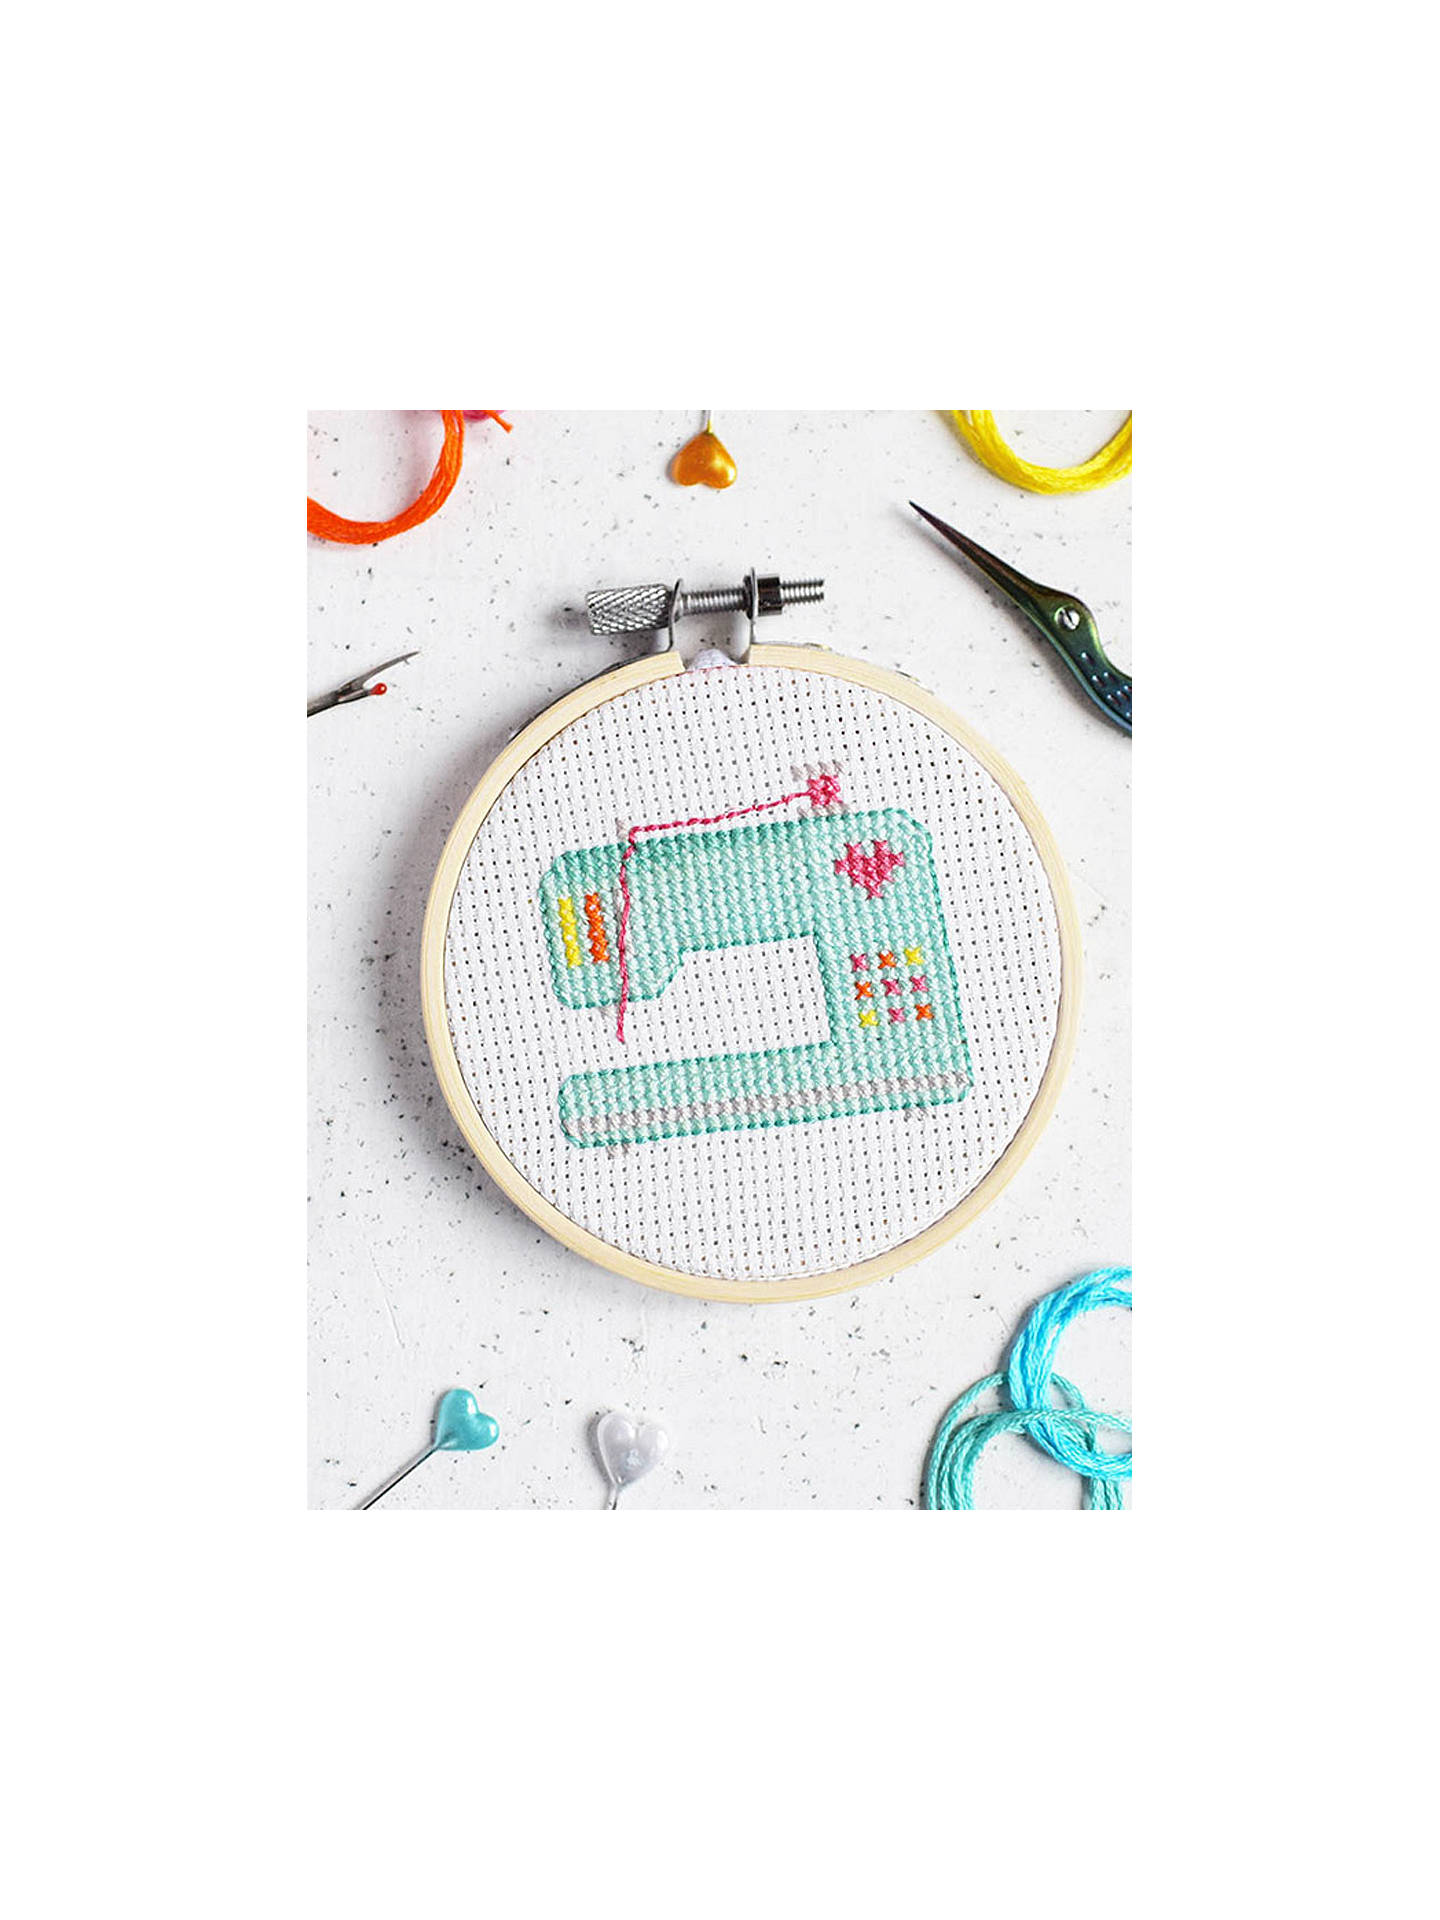 BuyThe Make Arcade Sewing Machine Cross Stitch Kit Online at johnlewis.com